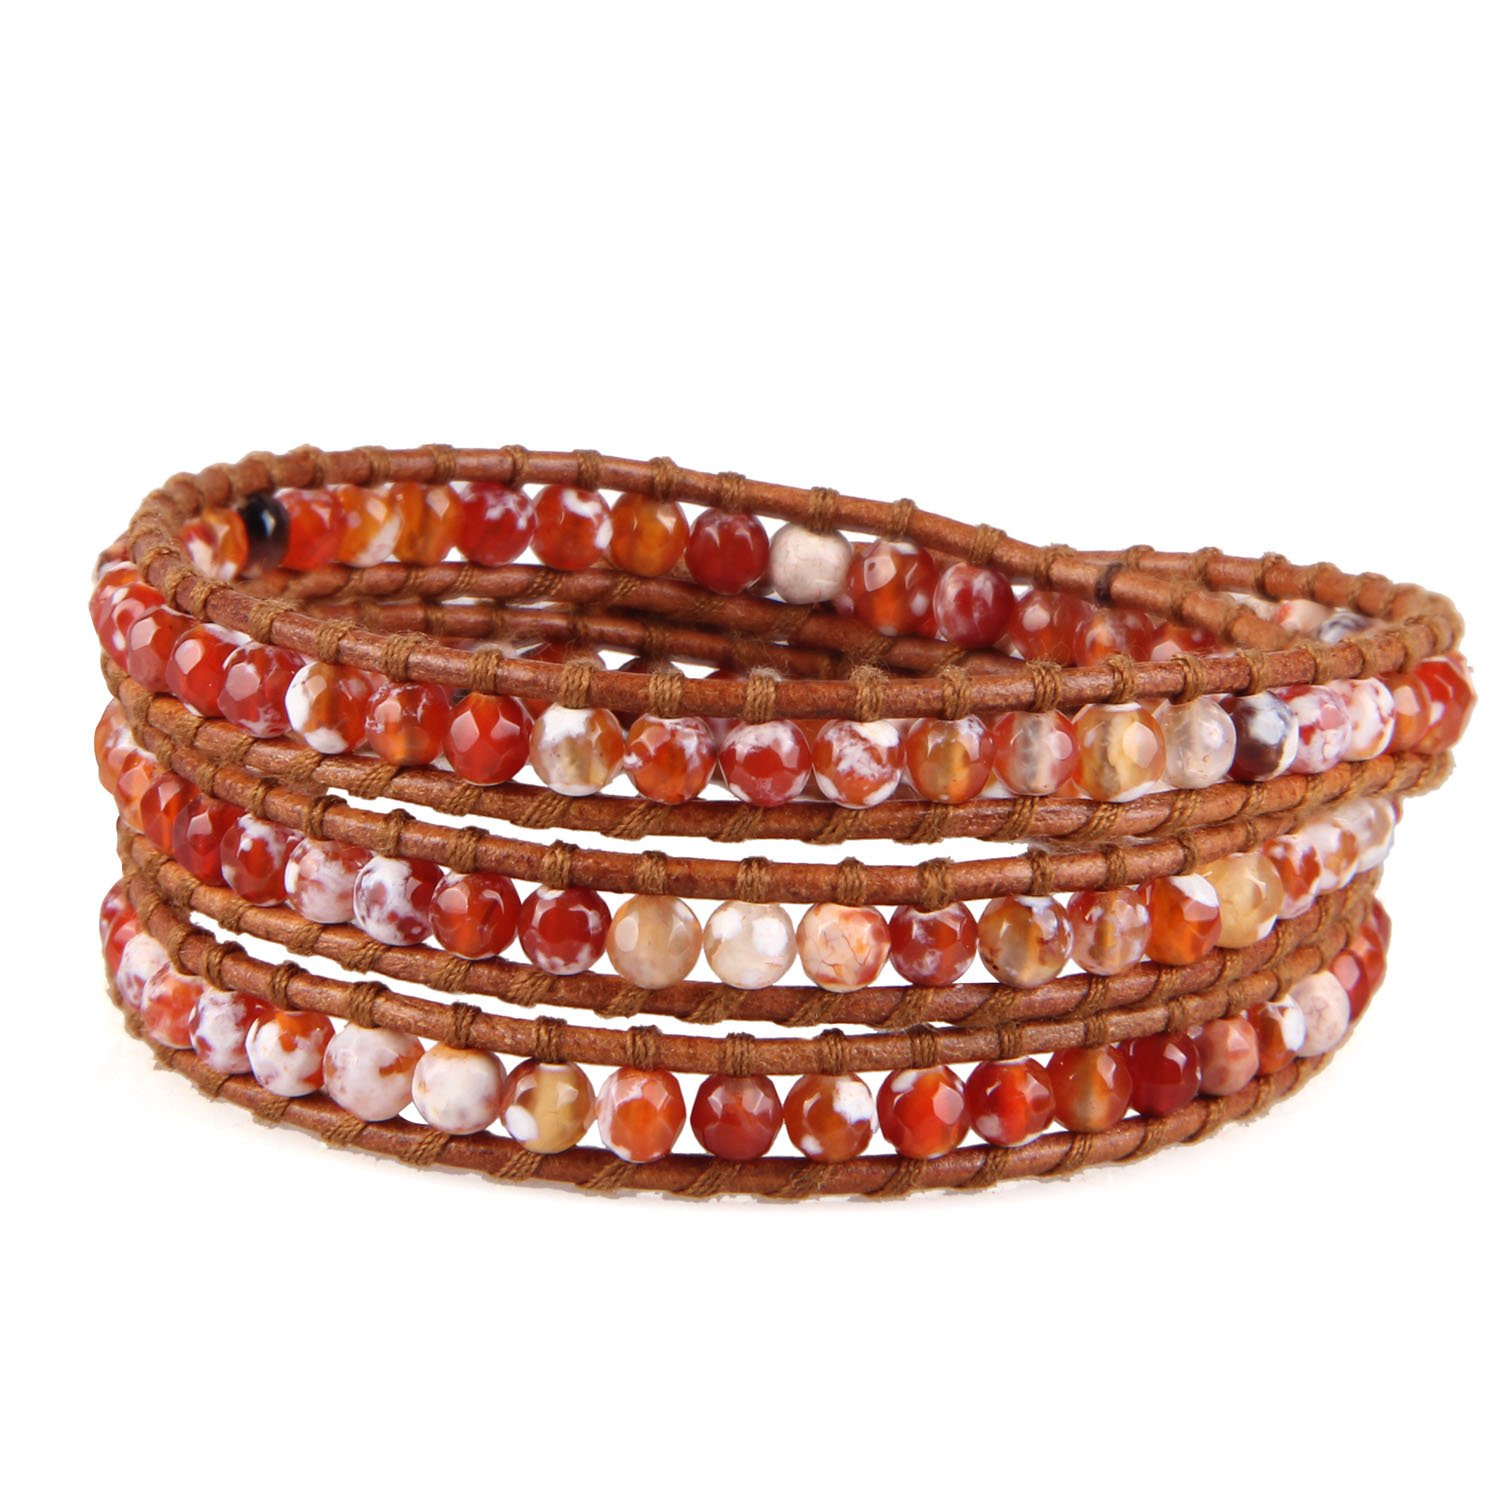 KELITCH Fire Agate Beads on Genuine Leather 3 Wrap Bracelet Handmade New Charm Summer Jewelry